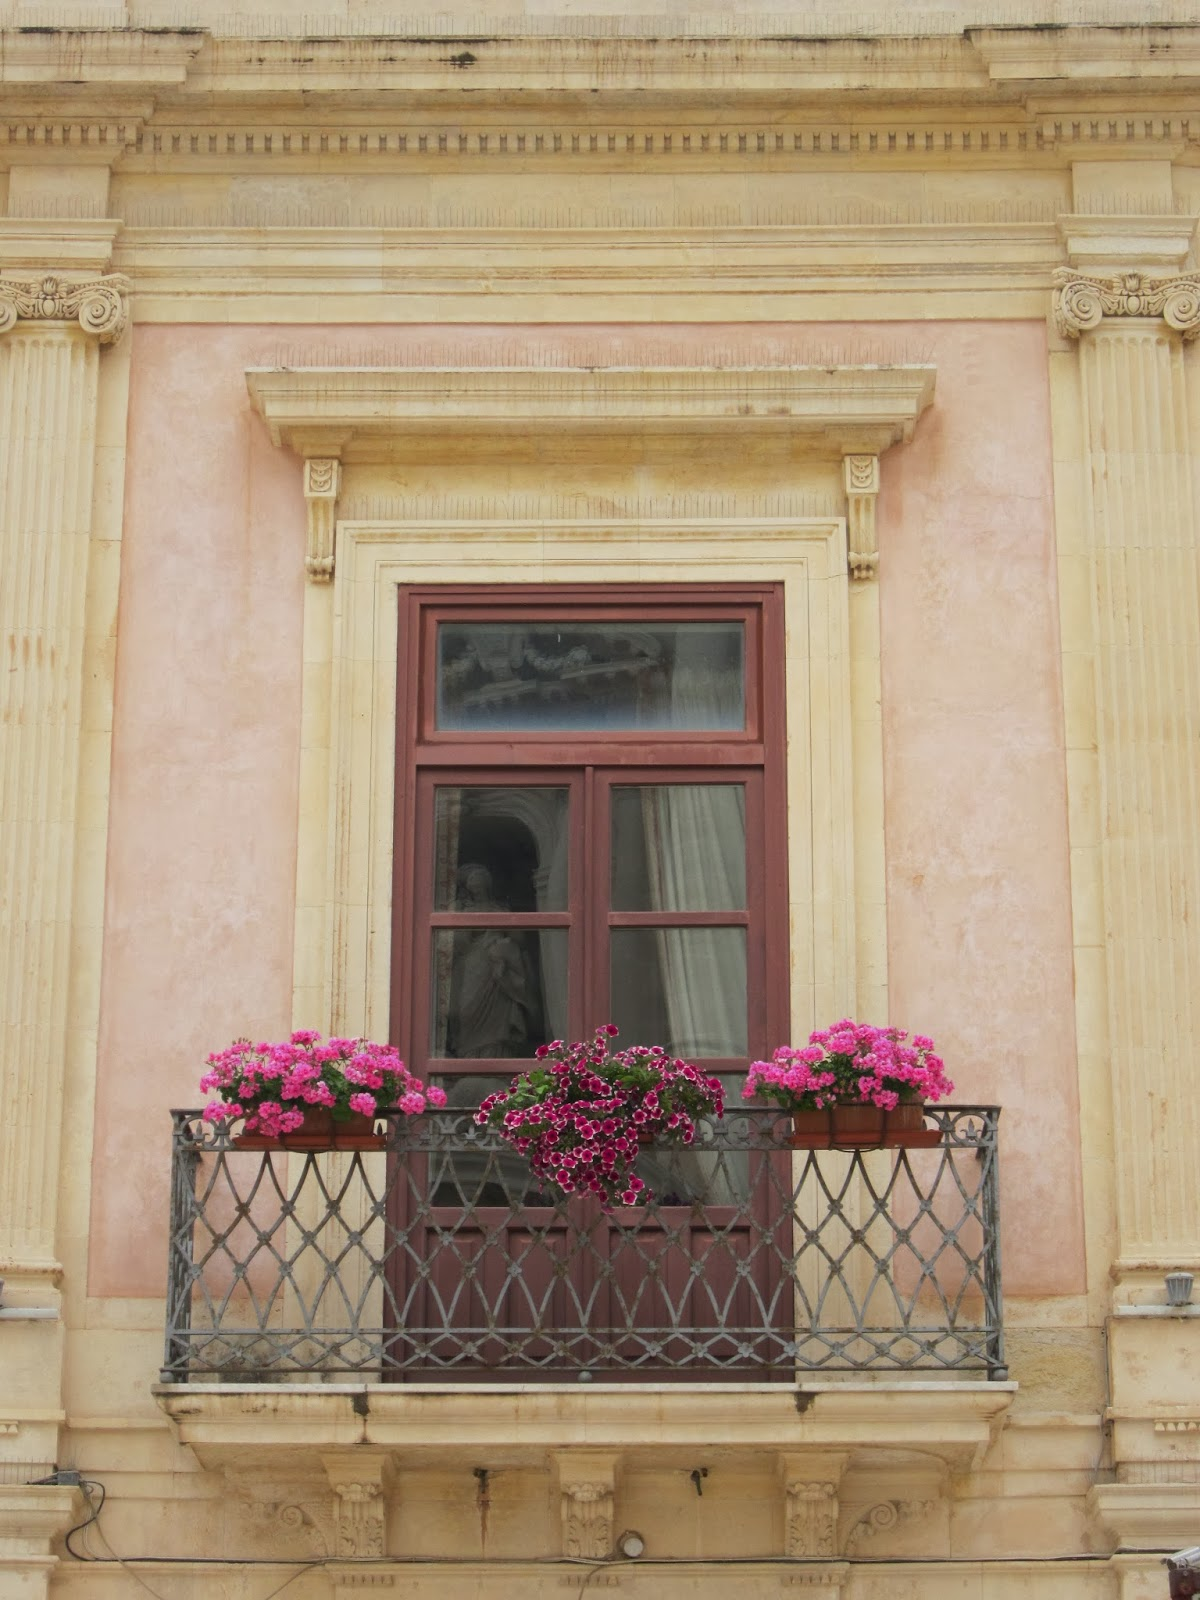 Romantic and Beautiful Balcony in Sicily